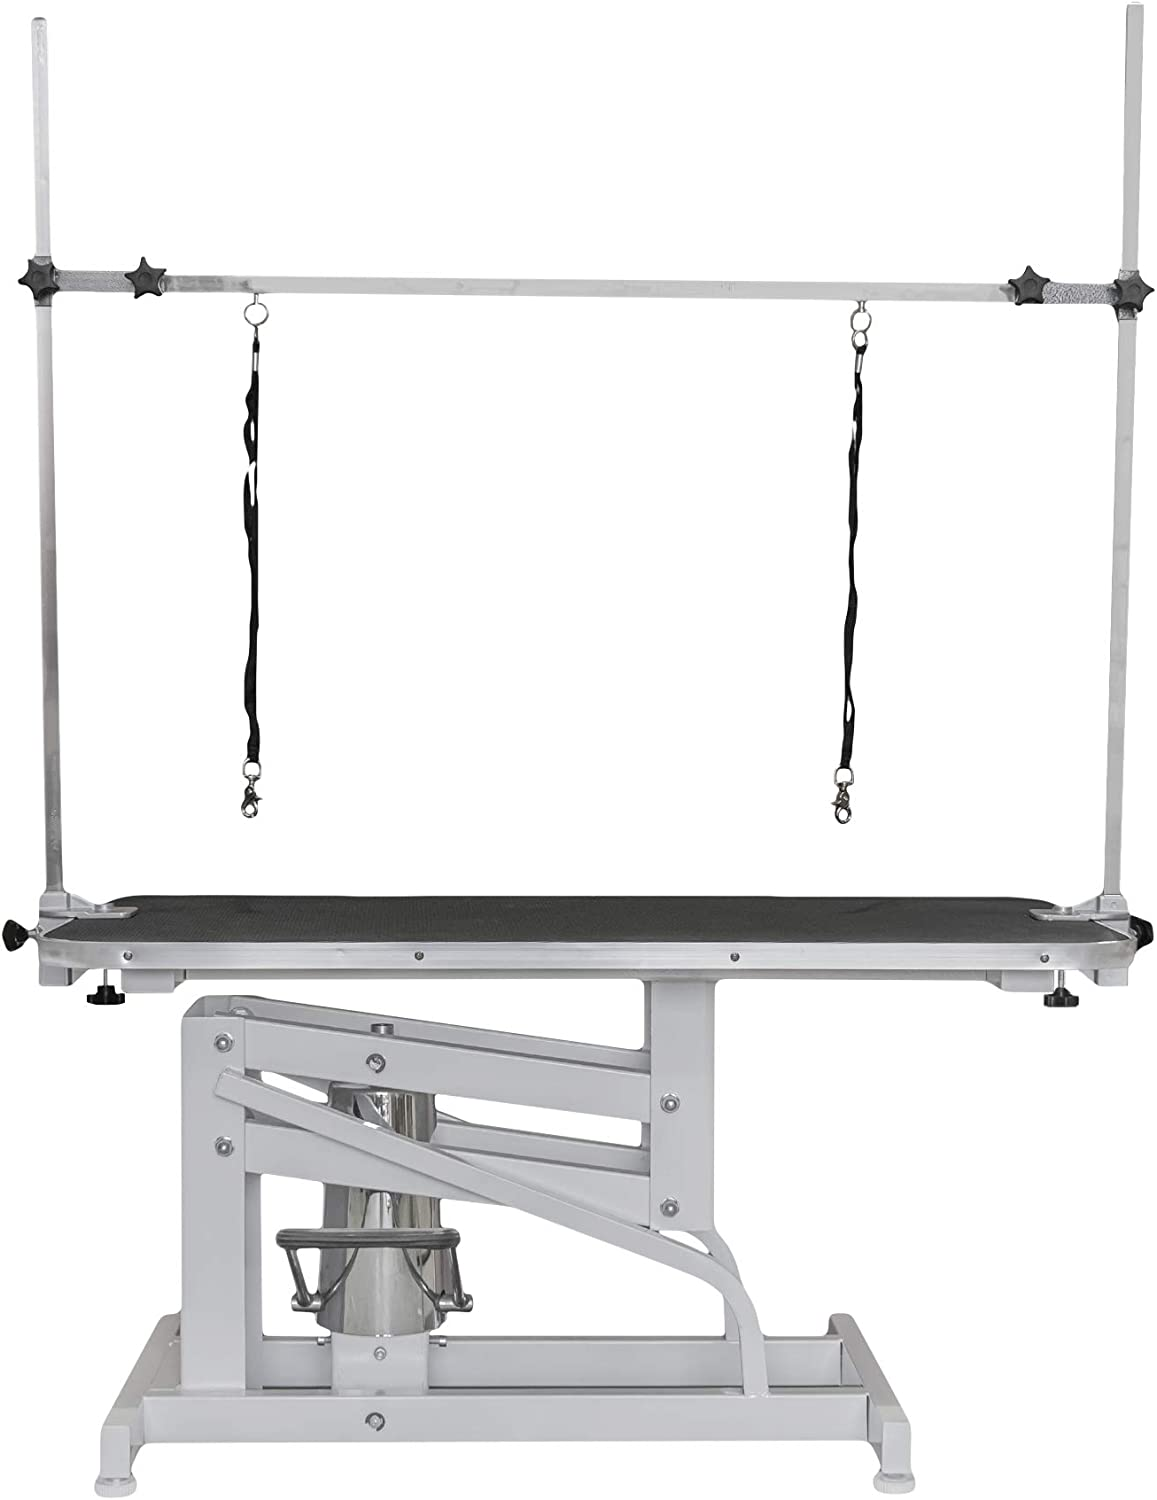 FFH Pisces KCT Large Hydraulic Dog Grooming Table 801